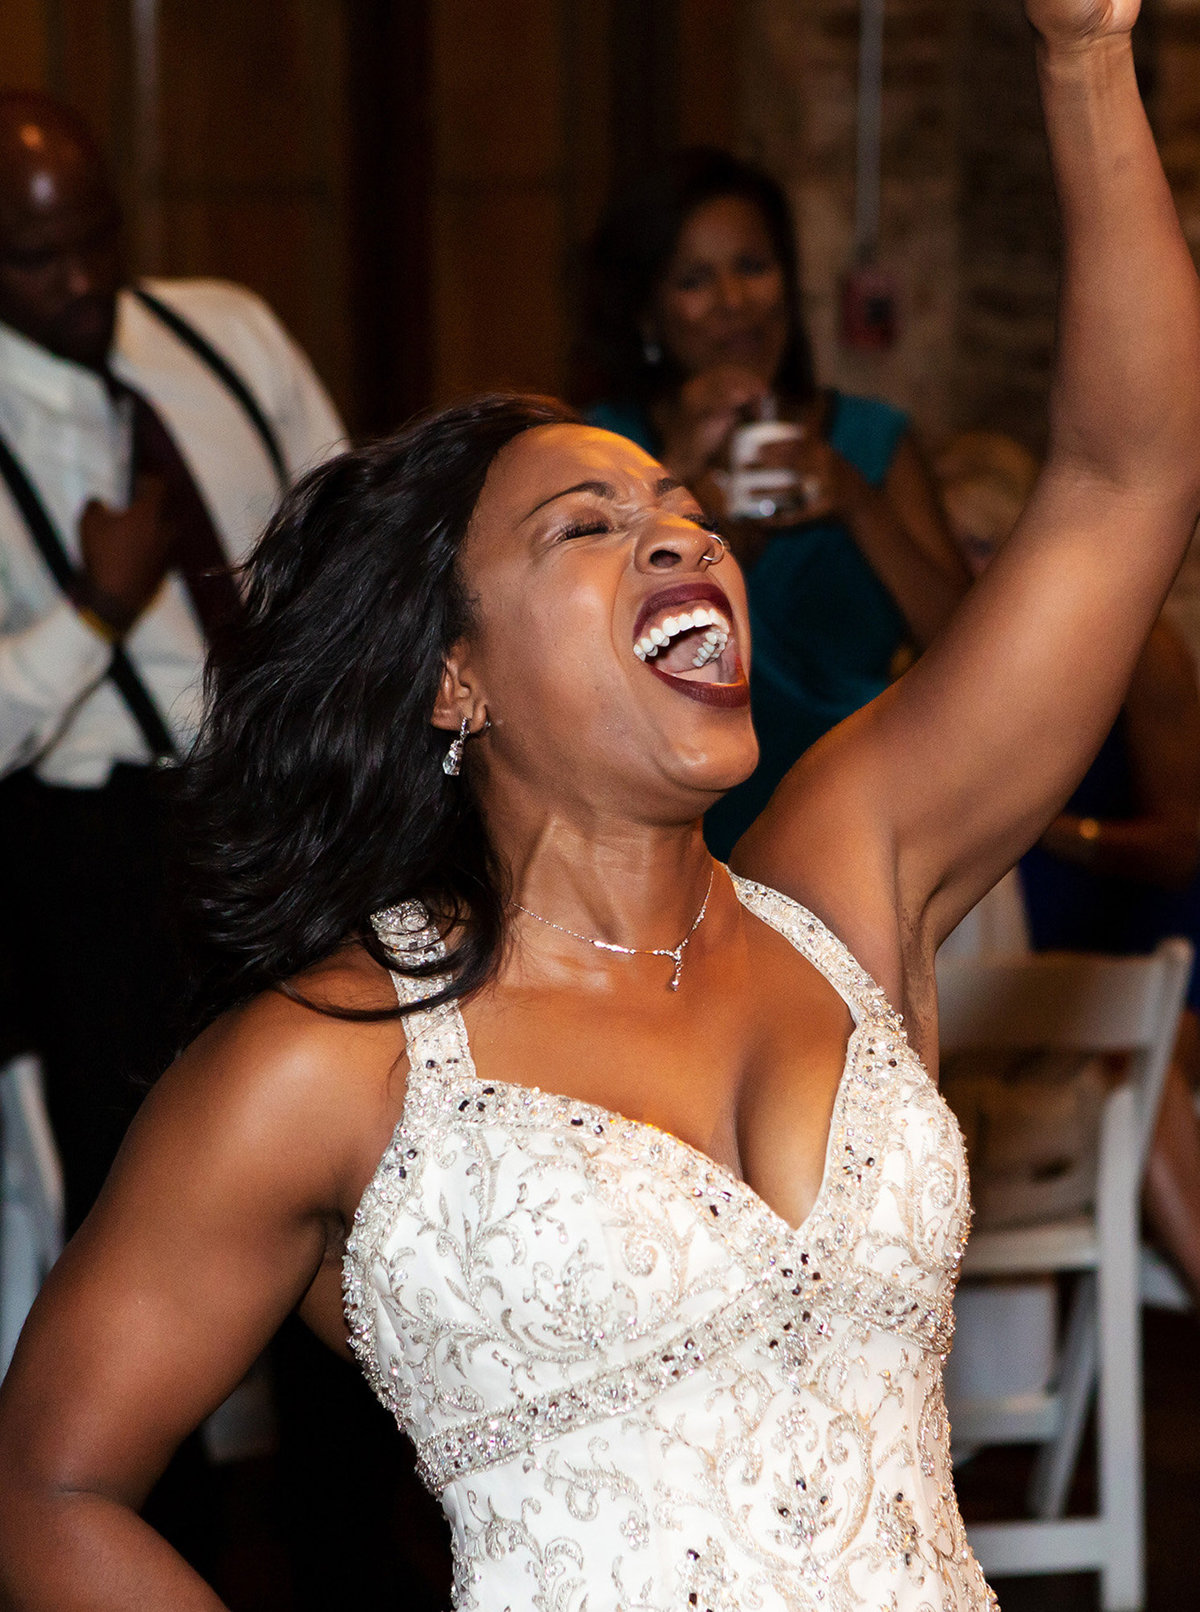 bride dancing at her wedding reception at Rosy's Jazz Hall in New Orleans, Louisiana